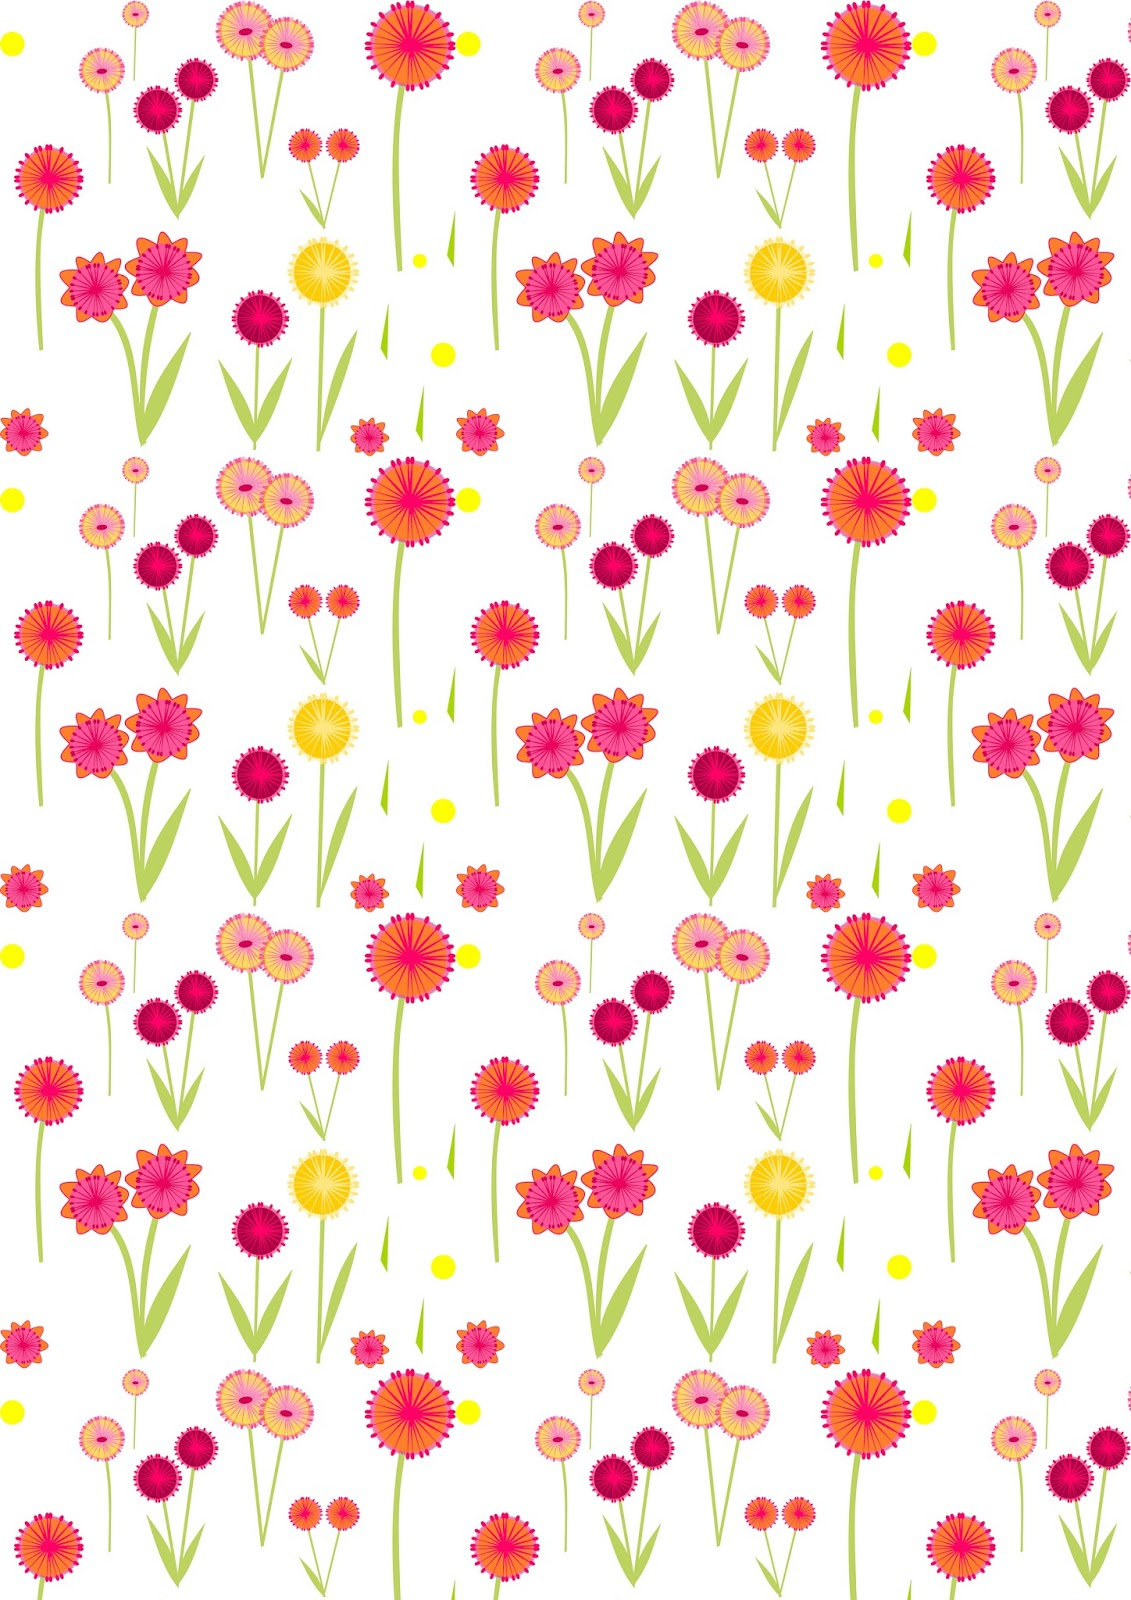 Free Digital Flower Scrapbooking Paper